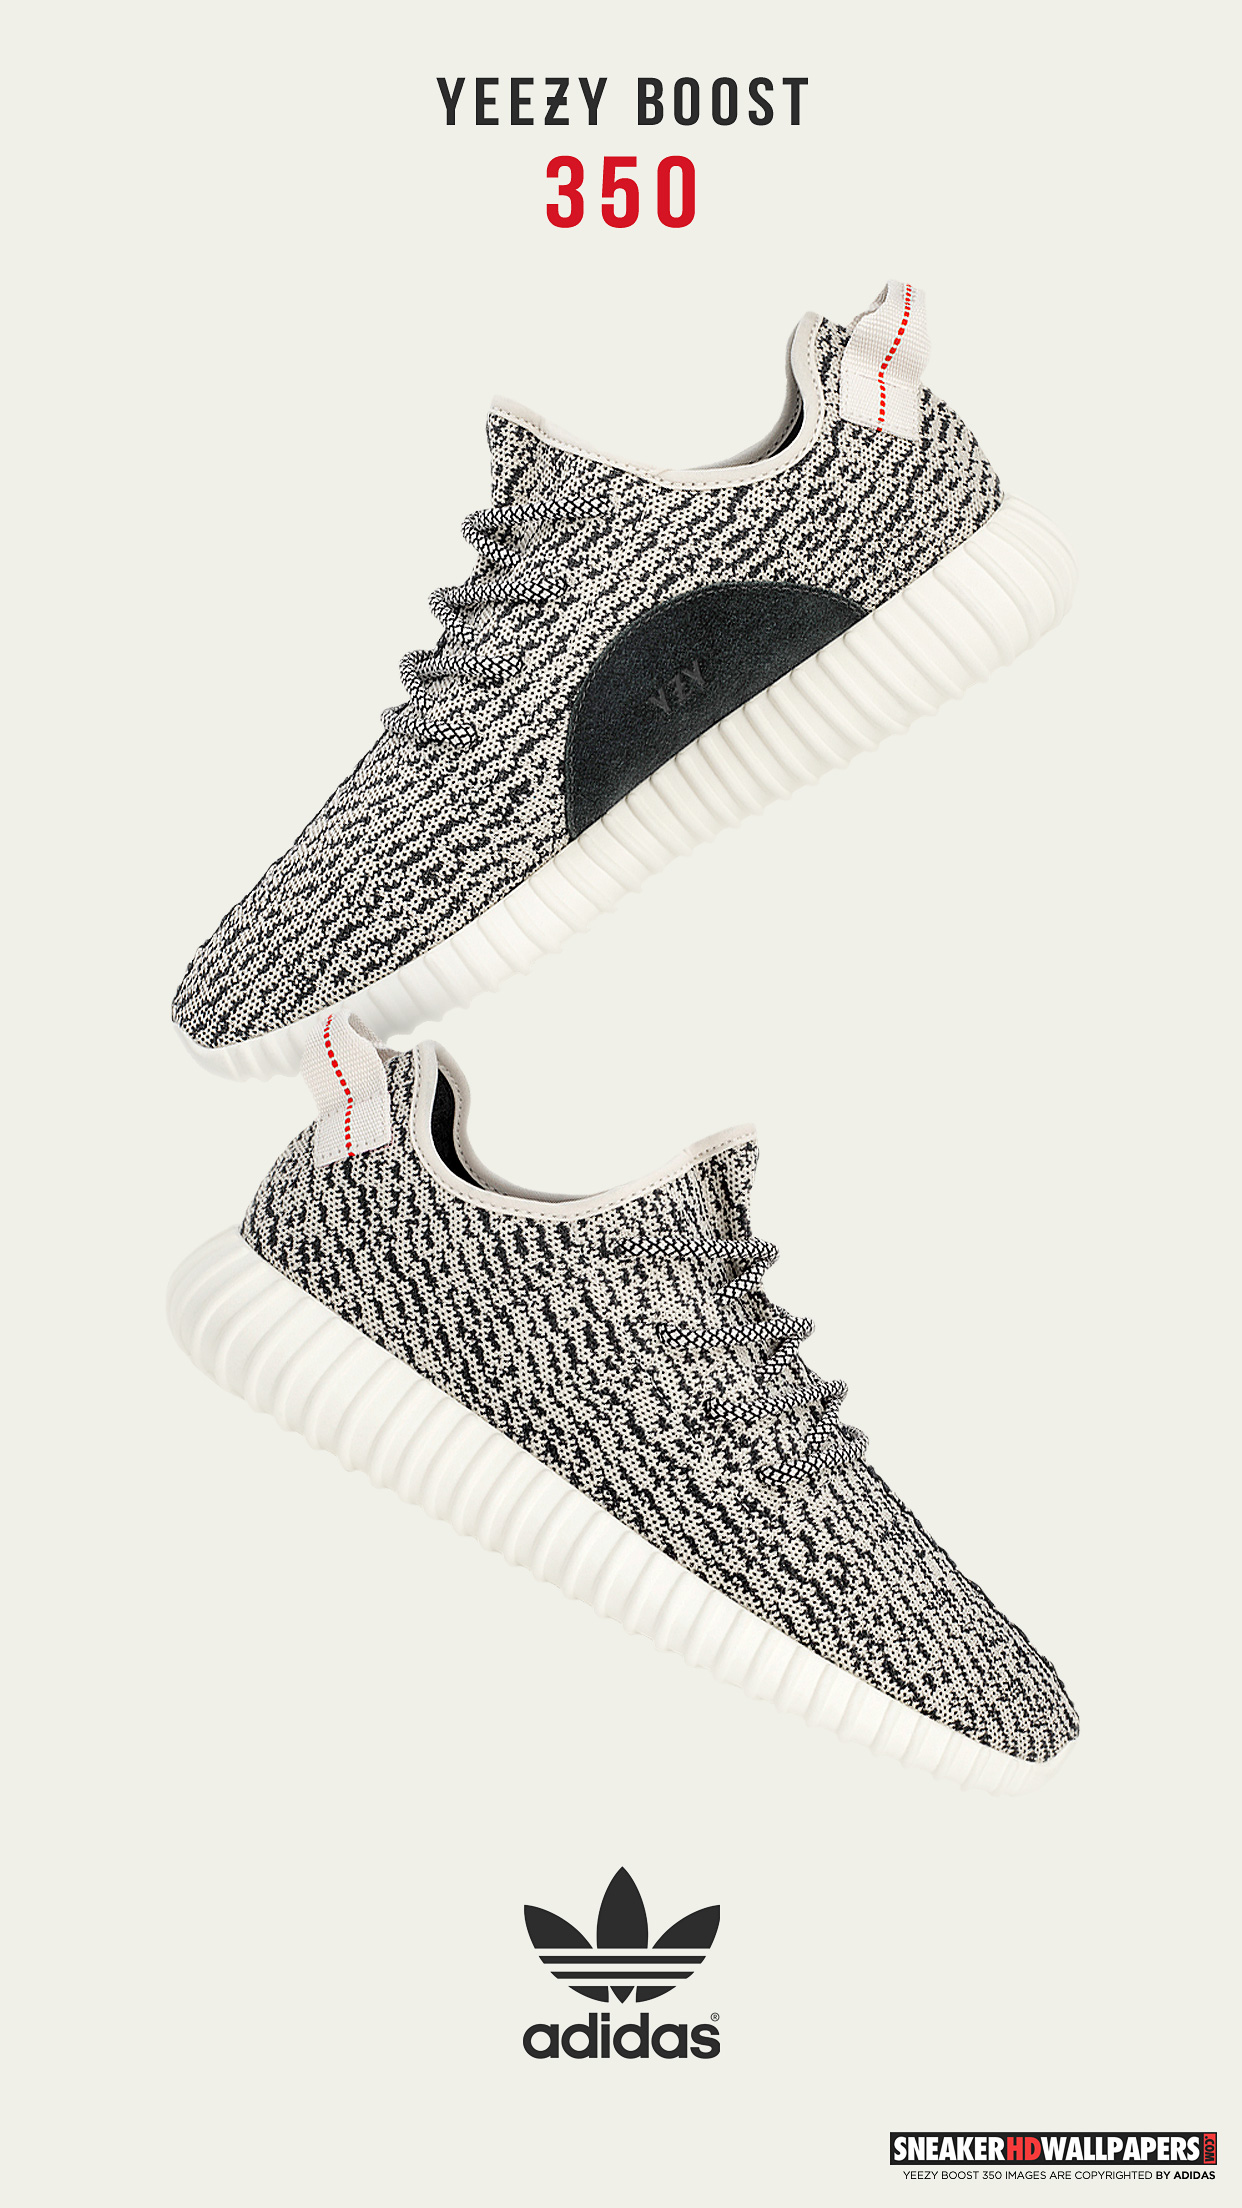 b20995a4d08 Adidas Yeezy Wallpaper Iphone - larmoric.com